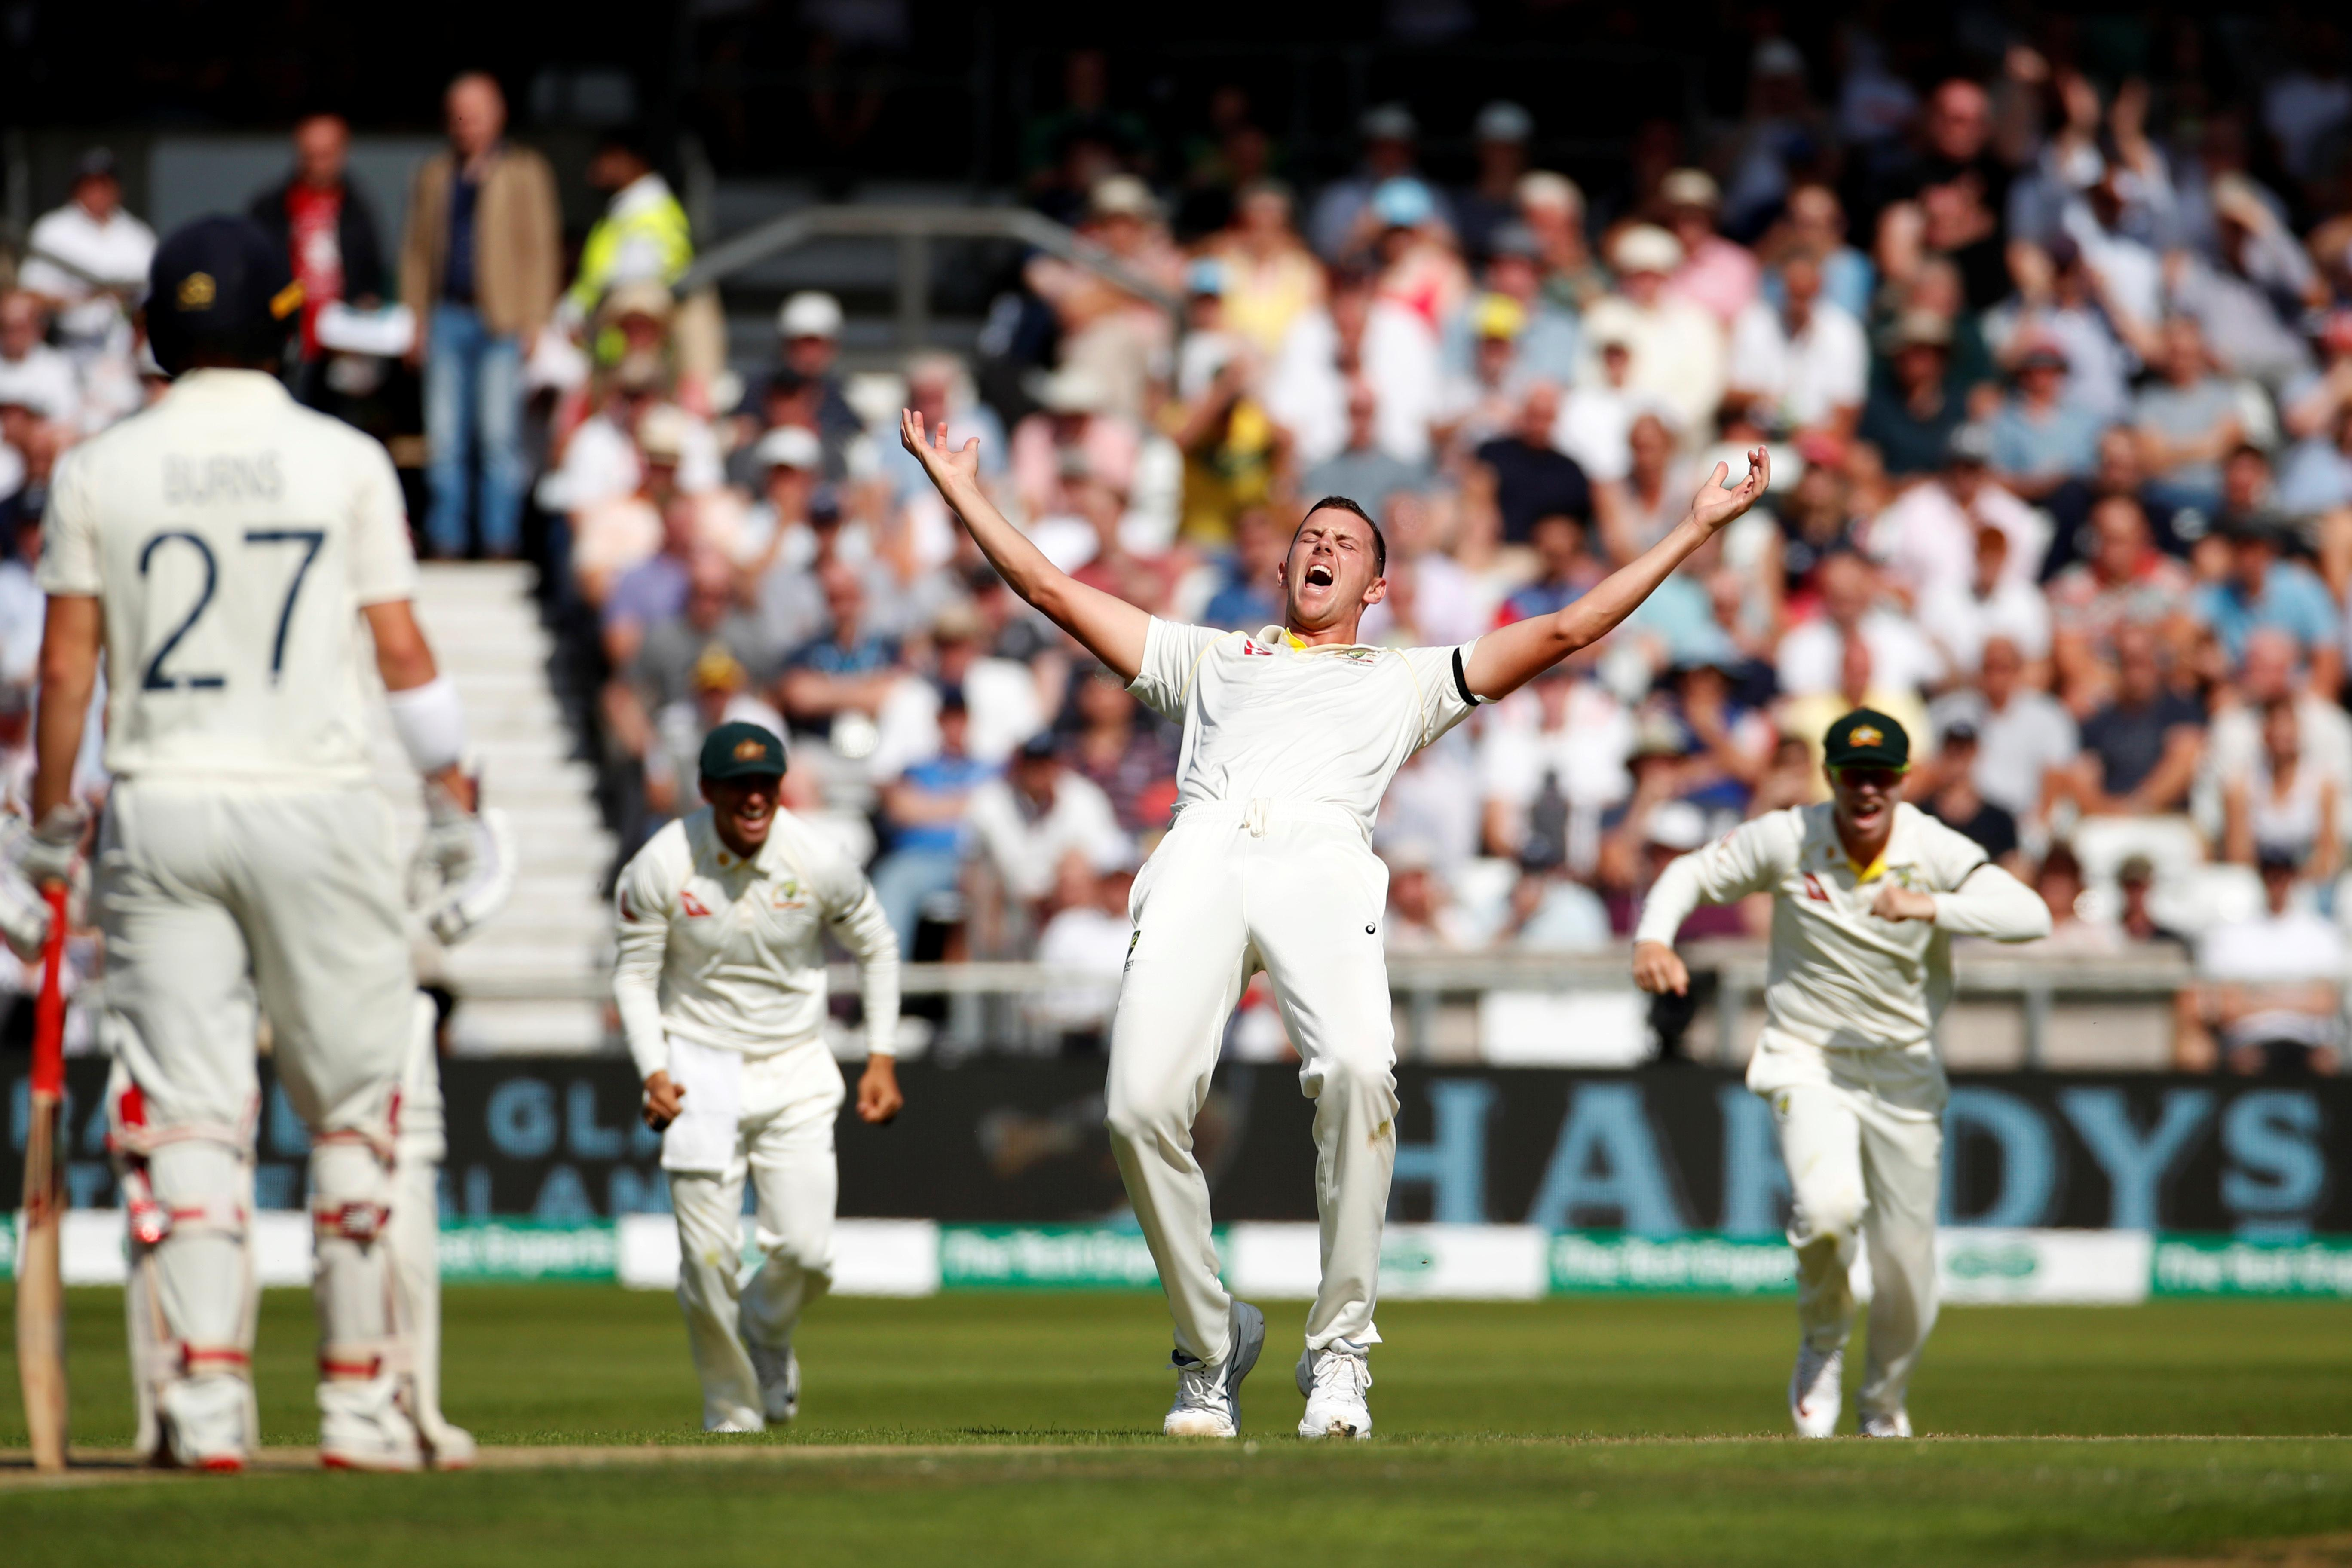 Woeful England post lowest total against Australia since 1948